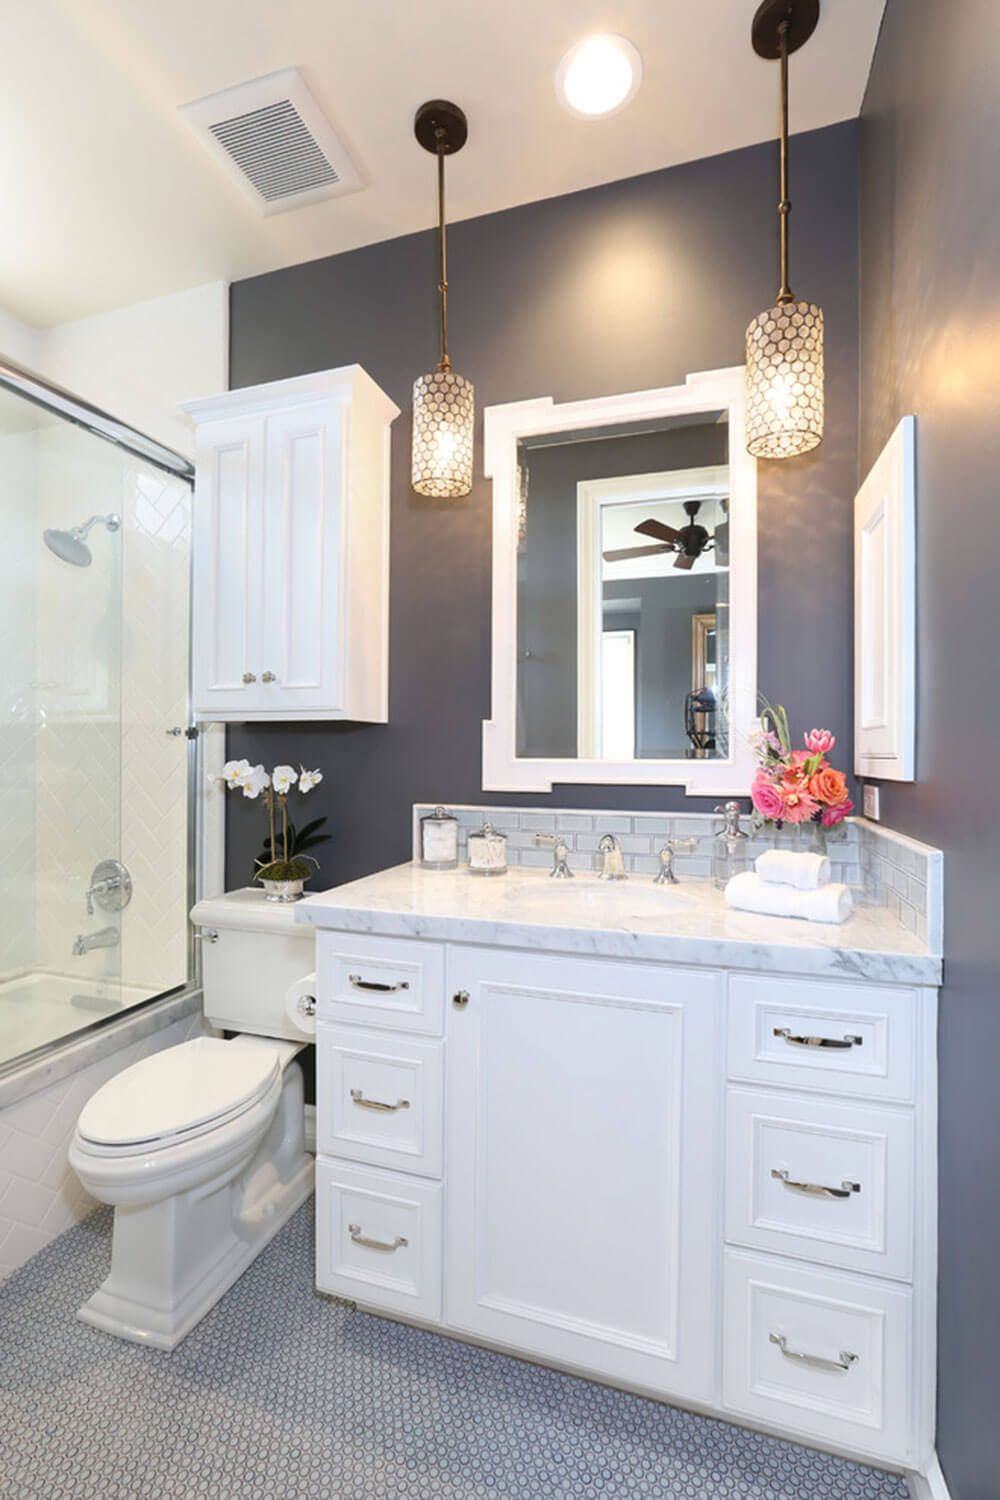 32 Small Bathroom Design Ideas for Every Taste | Pinterest | Dark ...